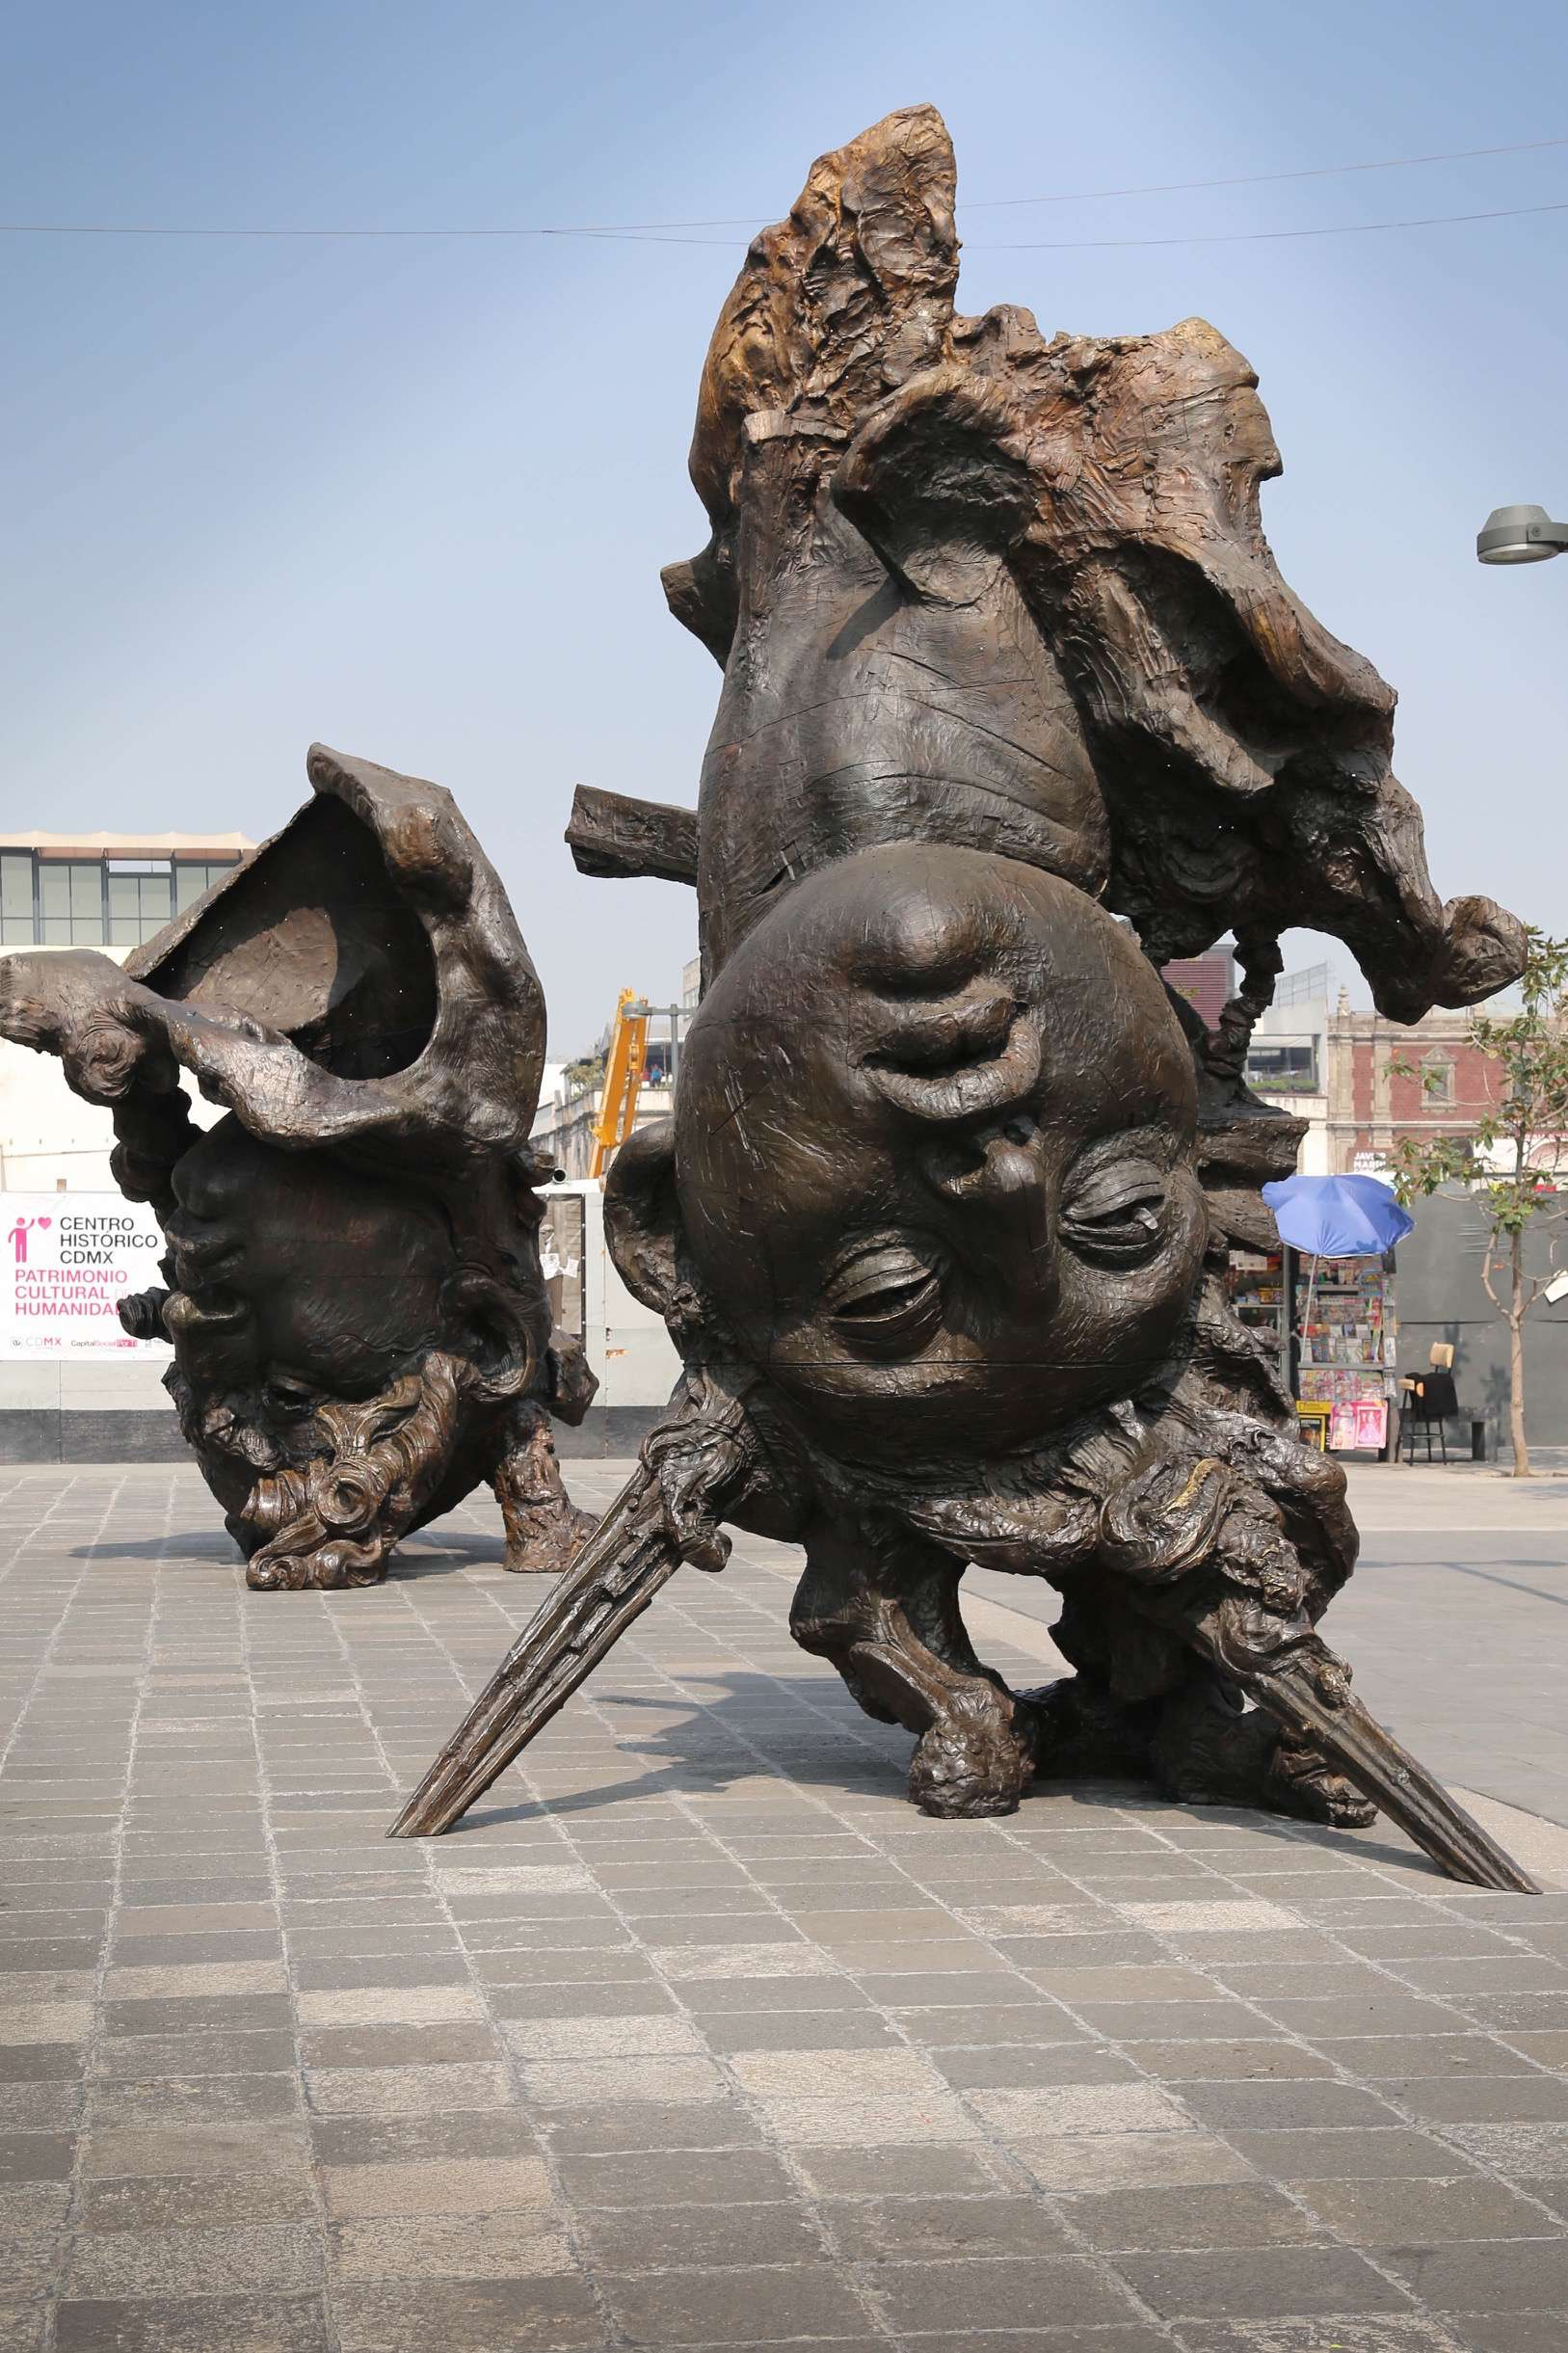 Jorge Marin is able to achieve what few sculptors are capable of; creating a sense of life on a massive scale.